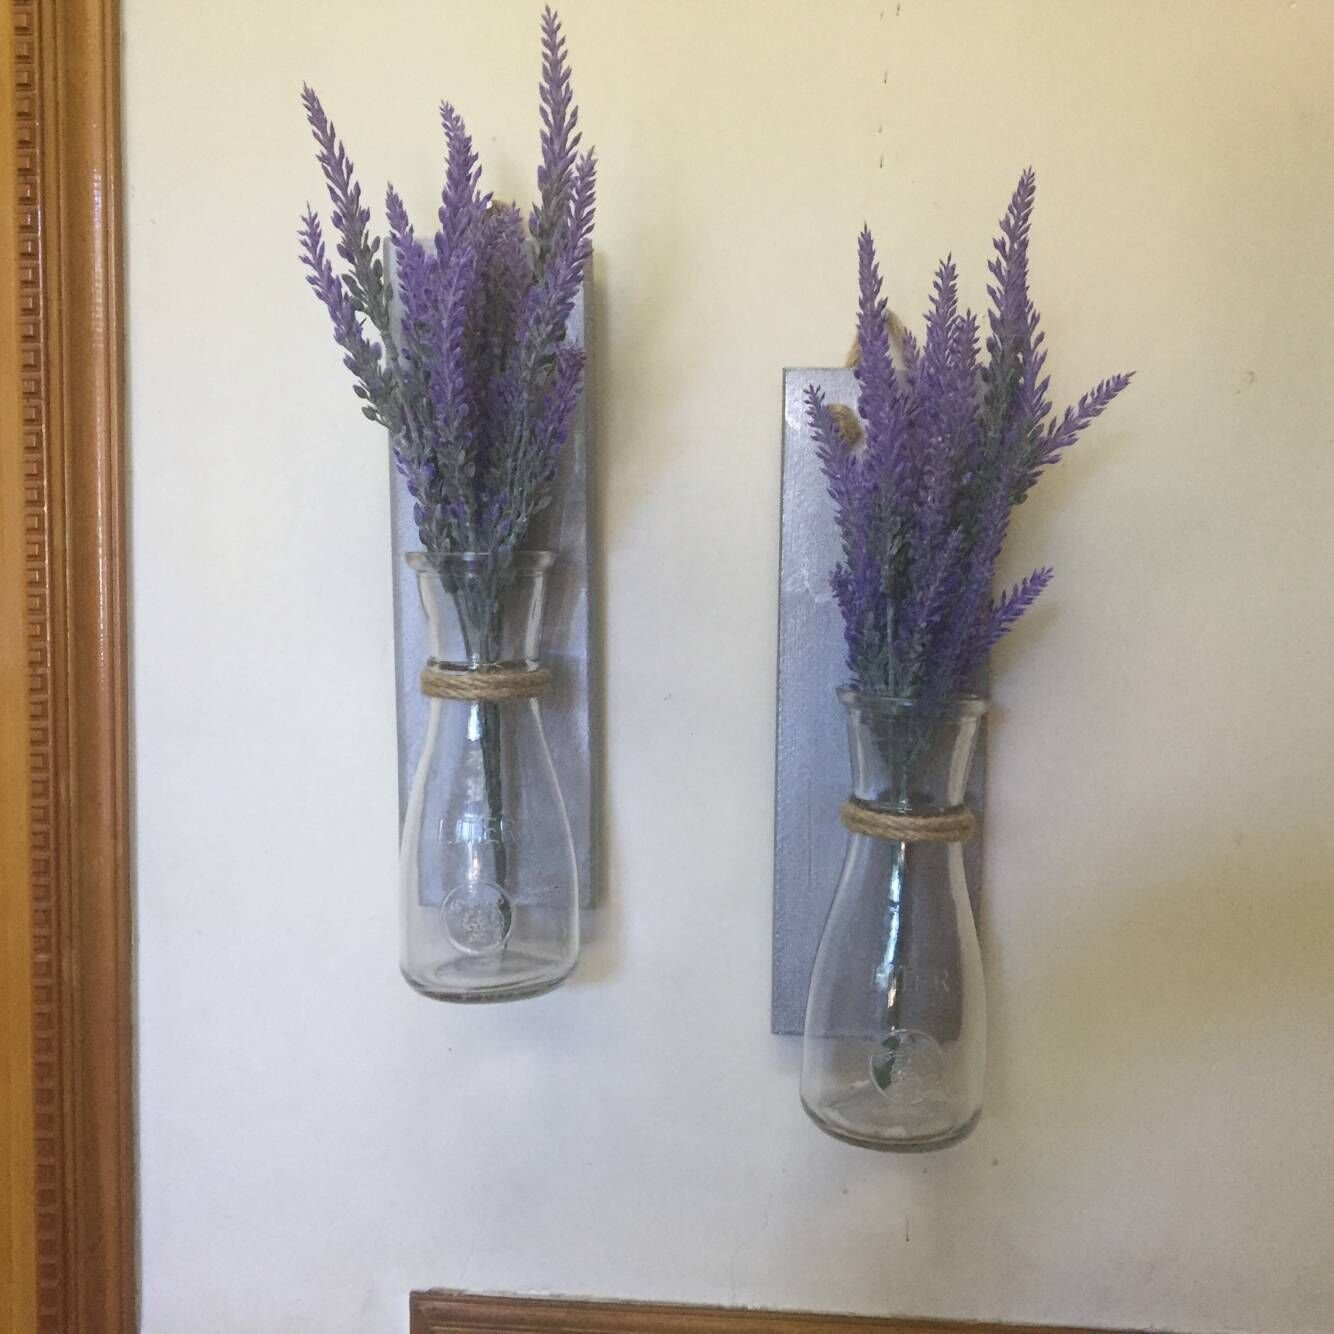 Silver Wood Mason Jar Sconce Wall Vase, Rustic Set of 2 Mason Jar Decor Wall Sconce Mothers Day Gift Anniversary Gift Rustic Home Decor